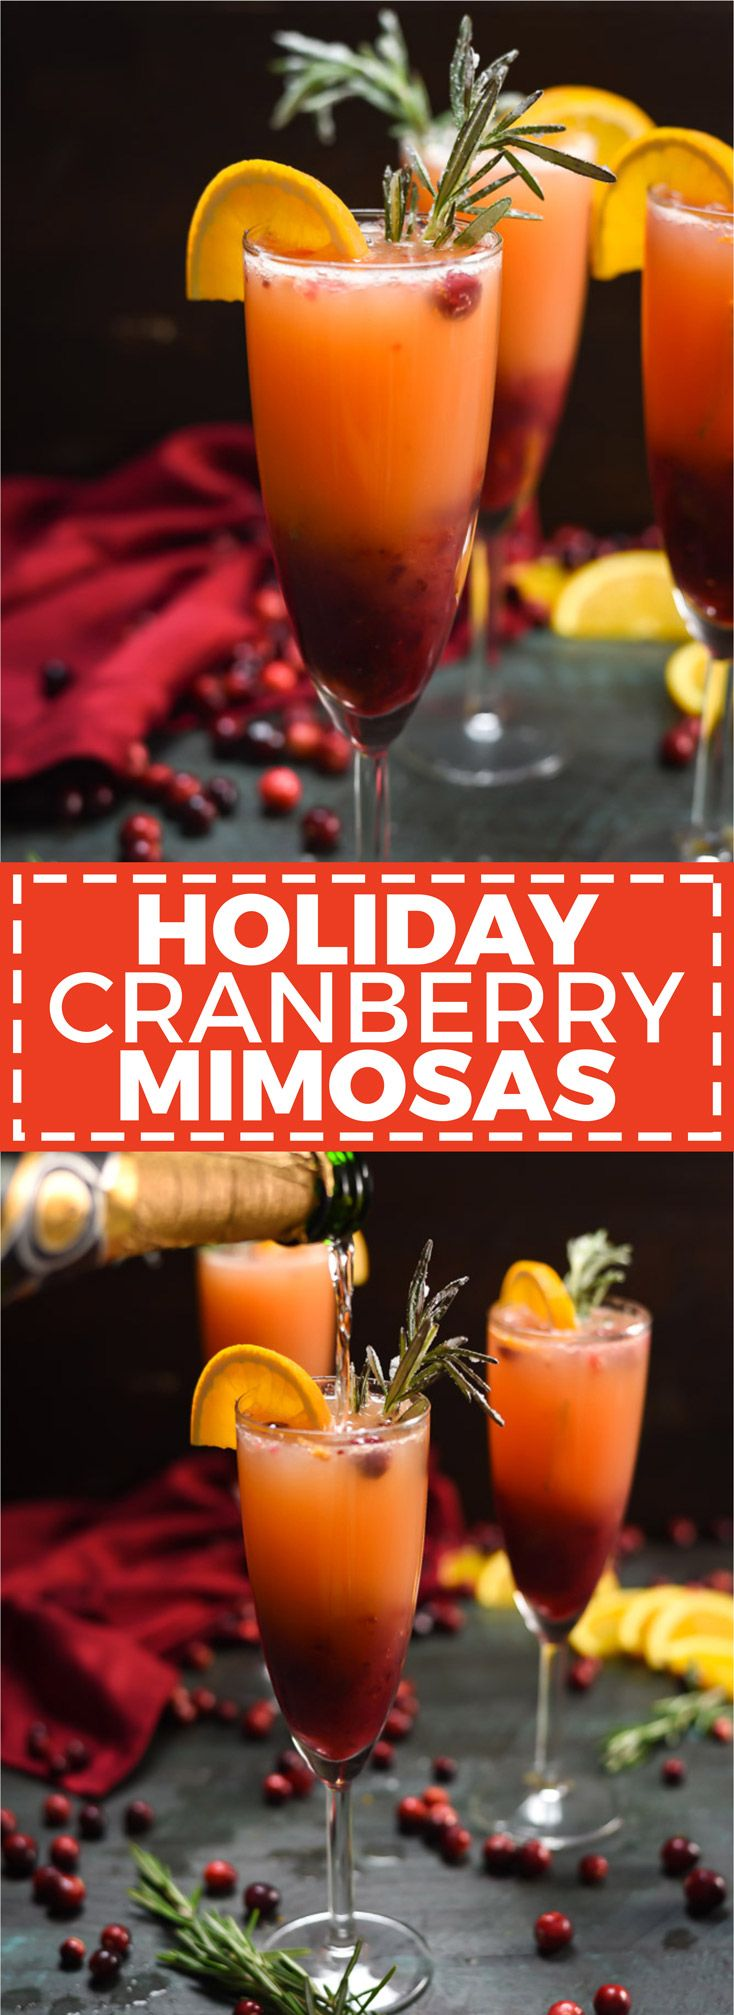 Holiday Cranberry Mimosas – Host The Toast